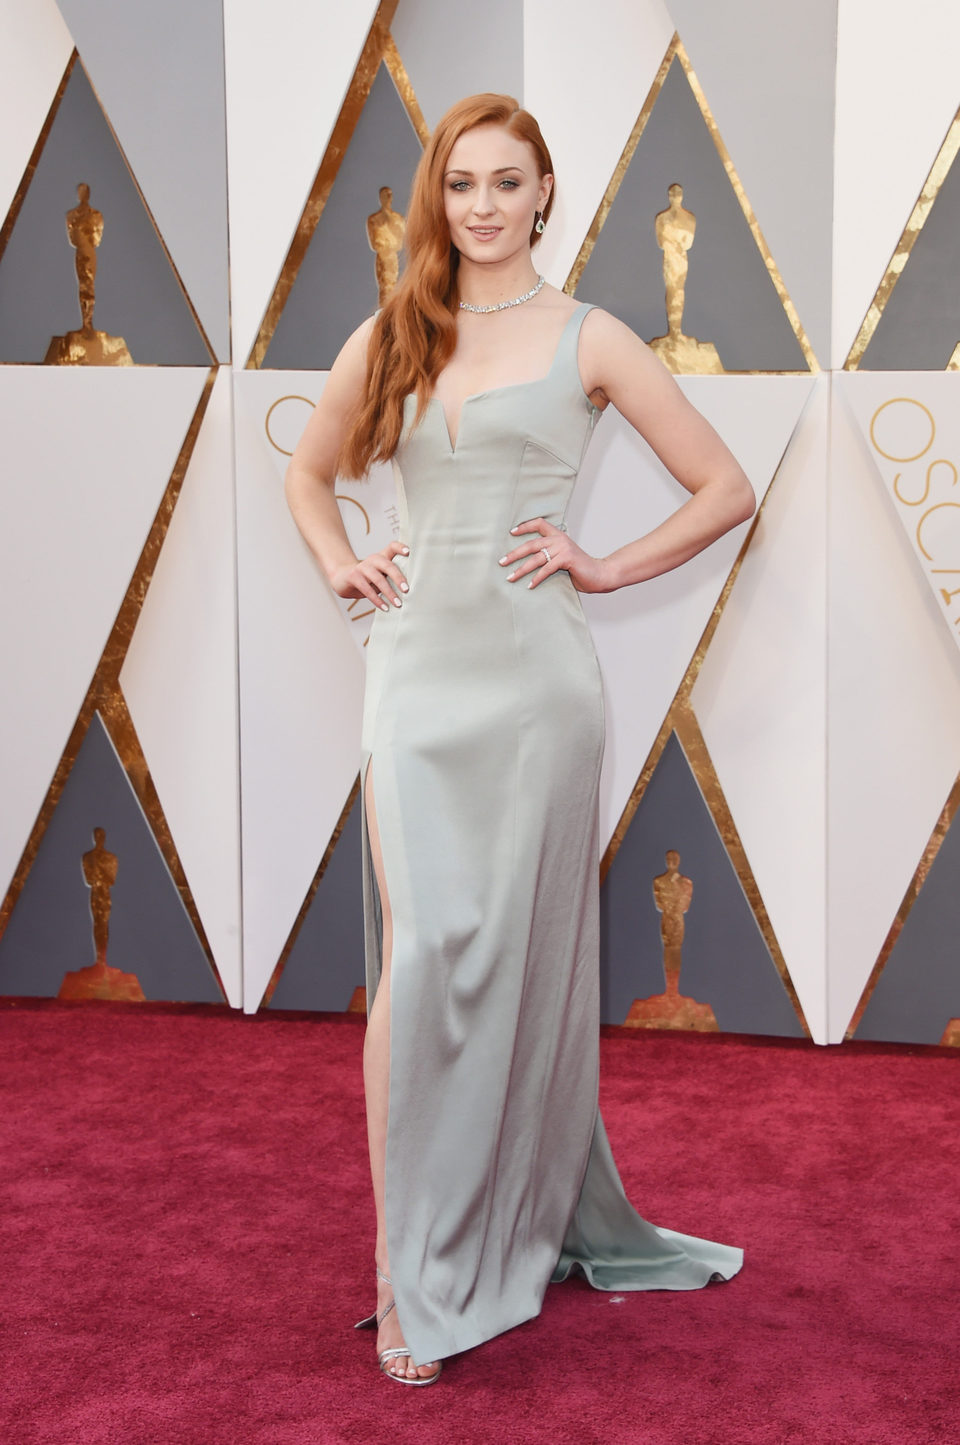 Sophie Turner at the Oscars 2016 red carpet